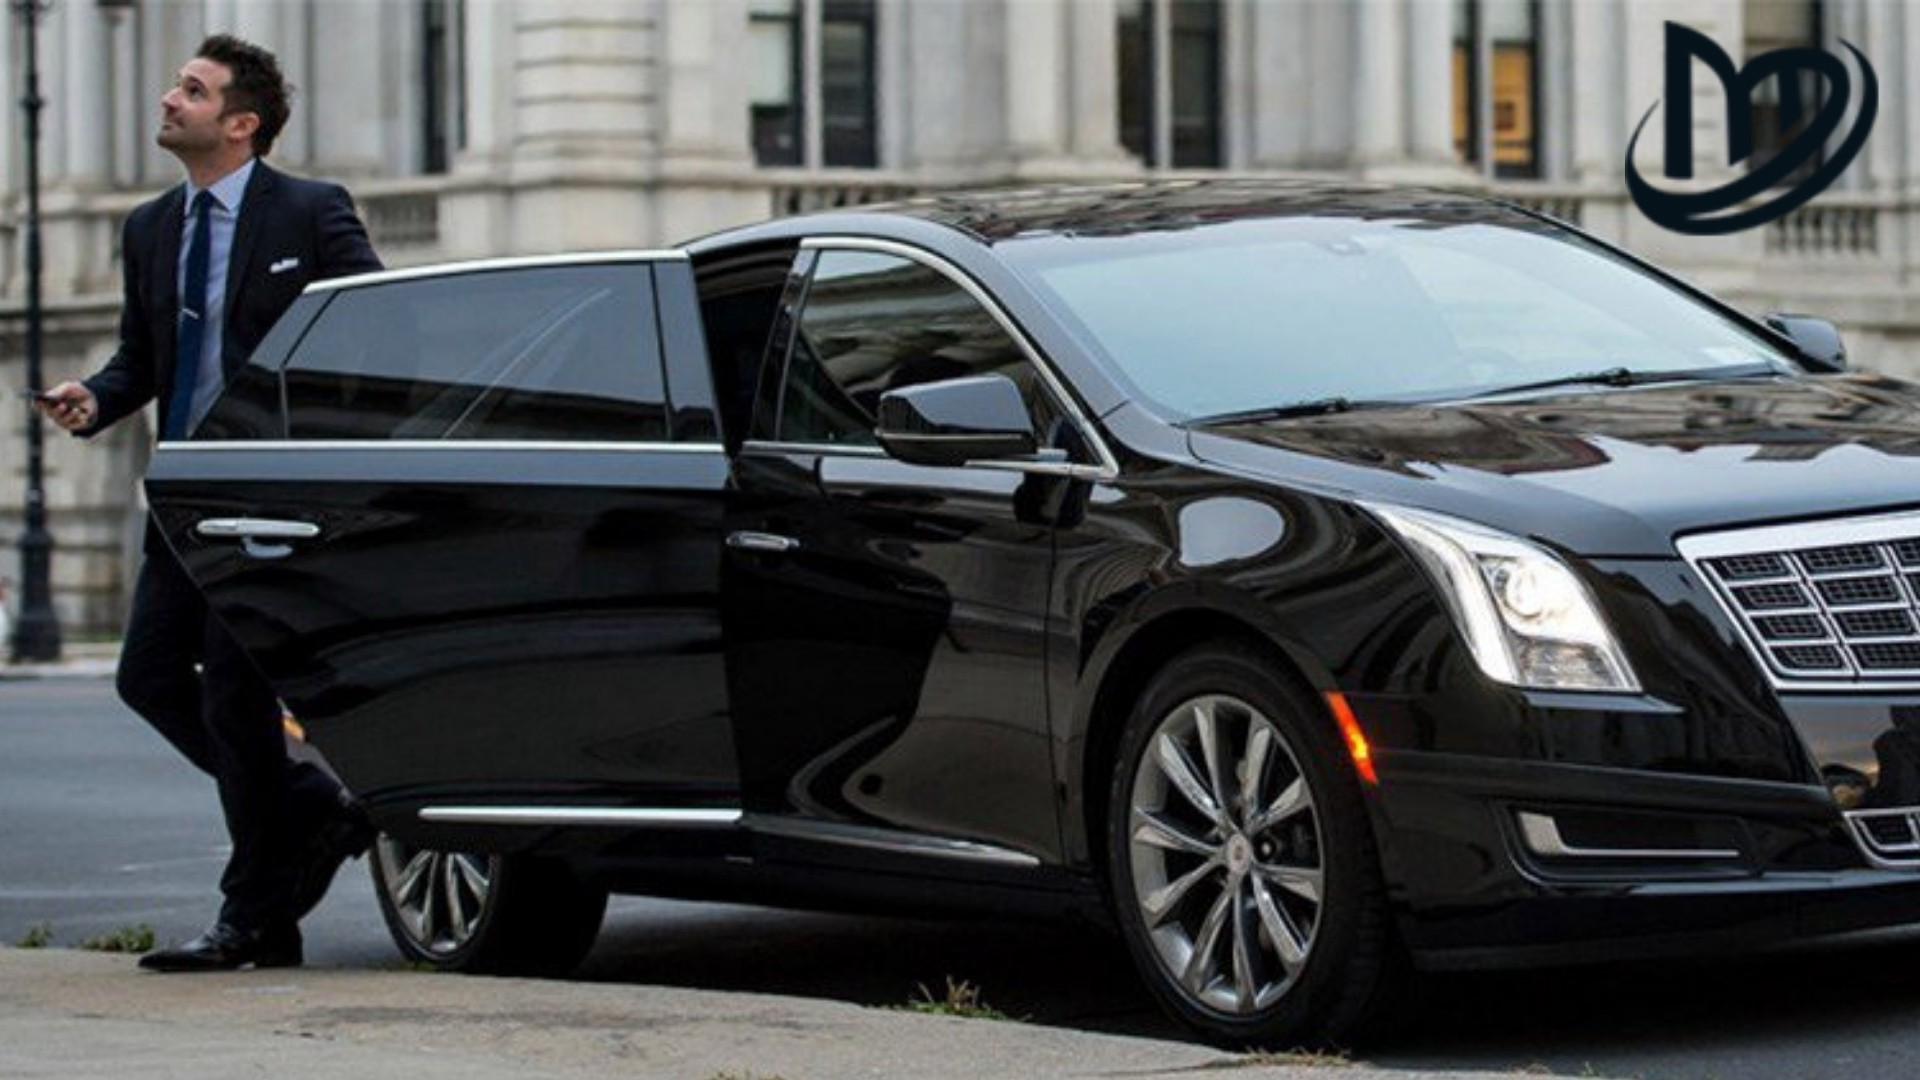 How to Airport Chauffeur Service Melbourne Australia